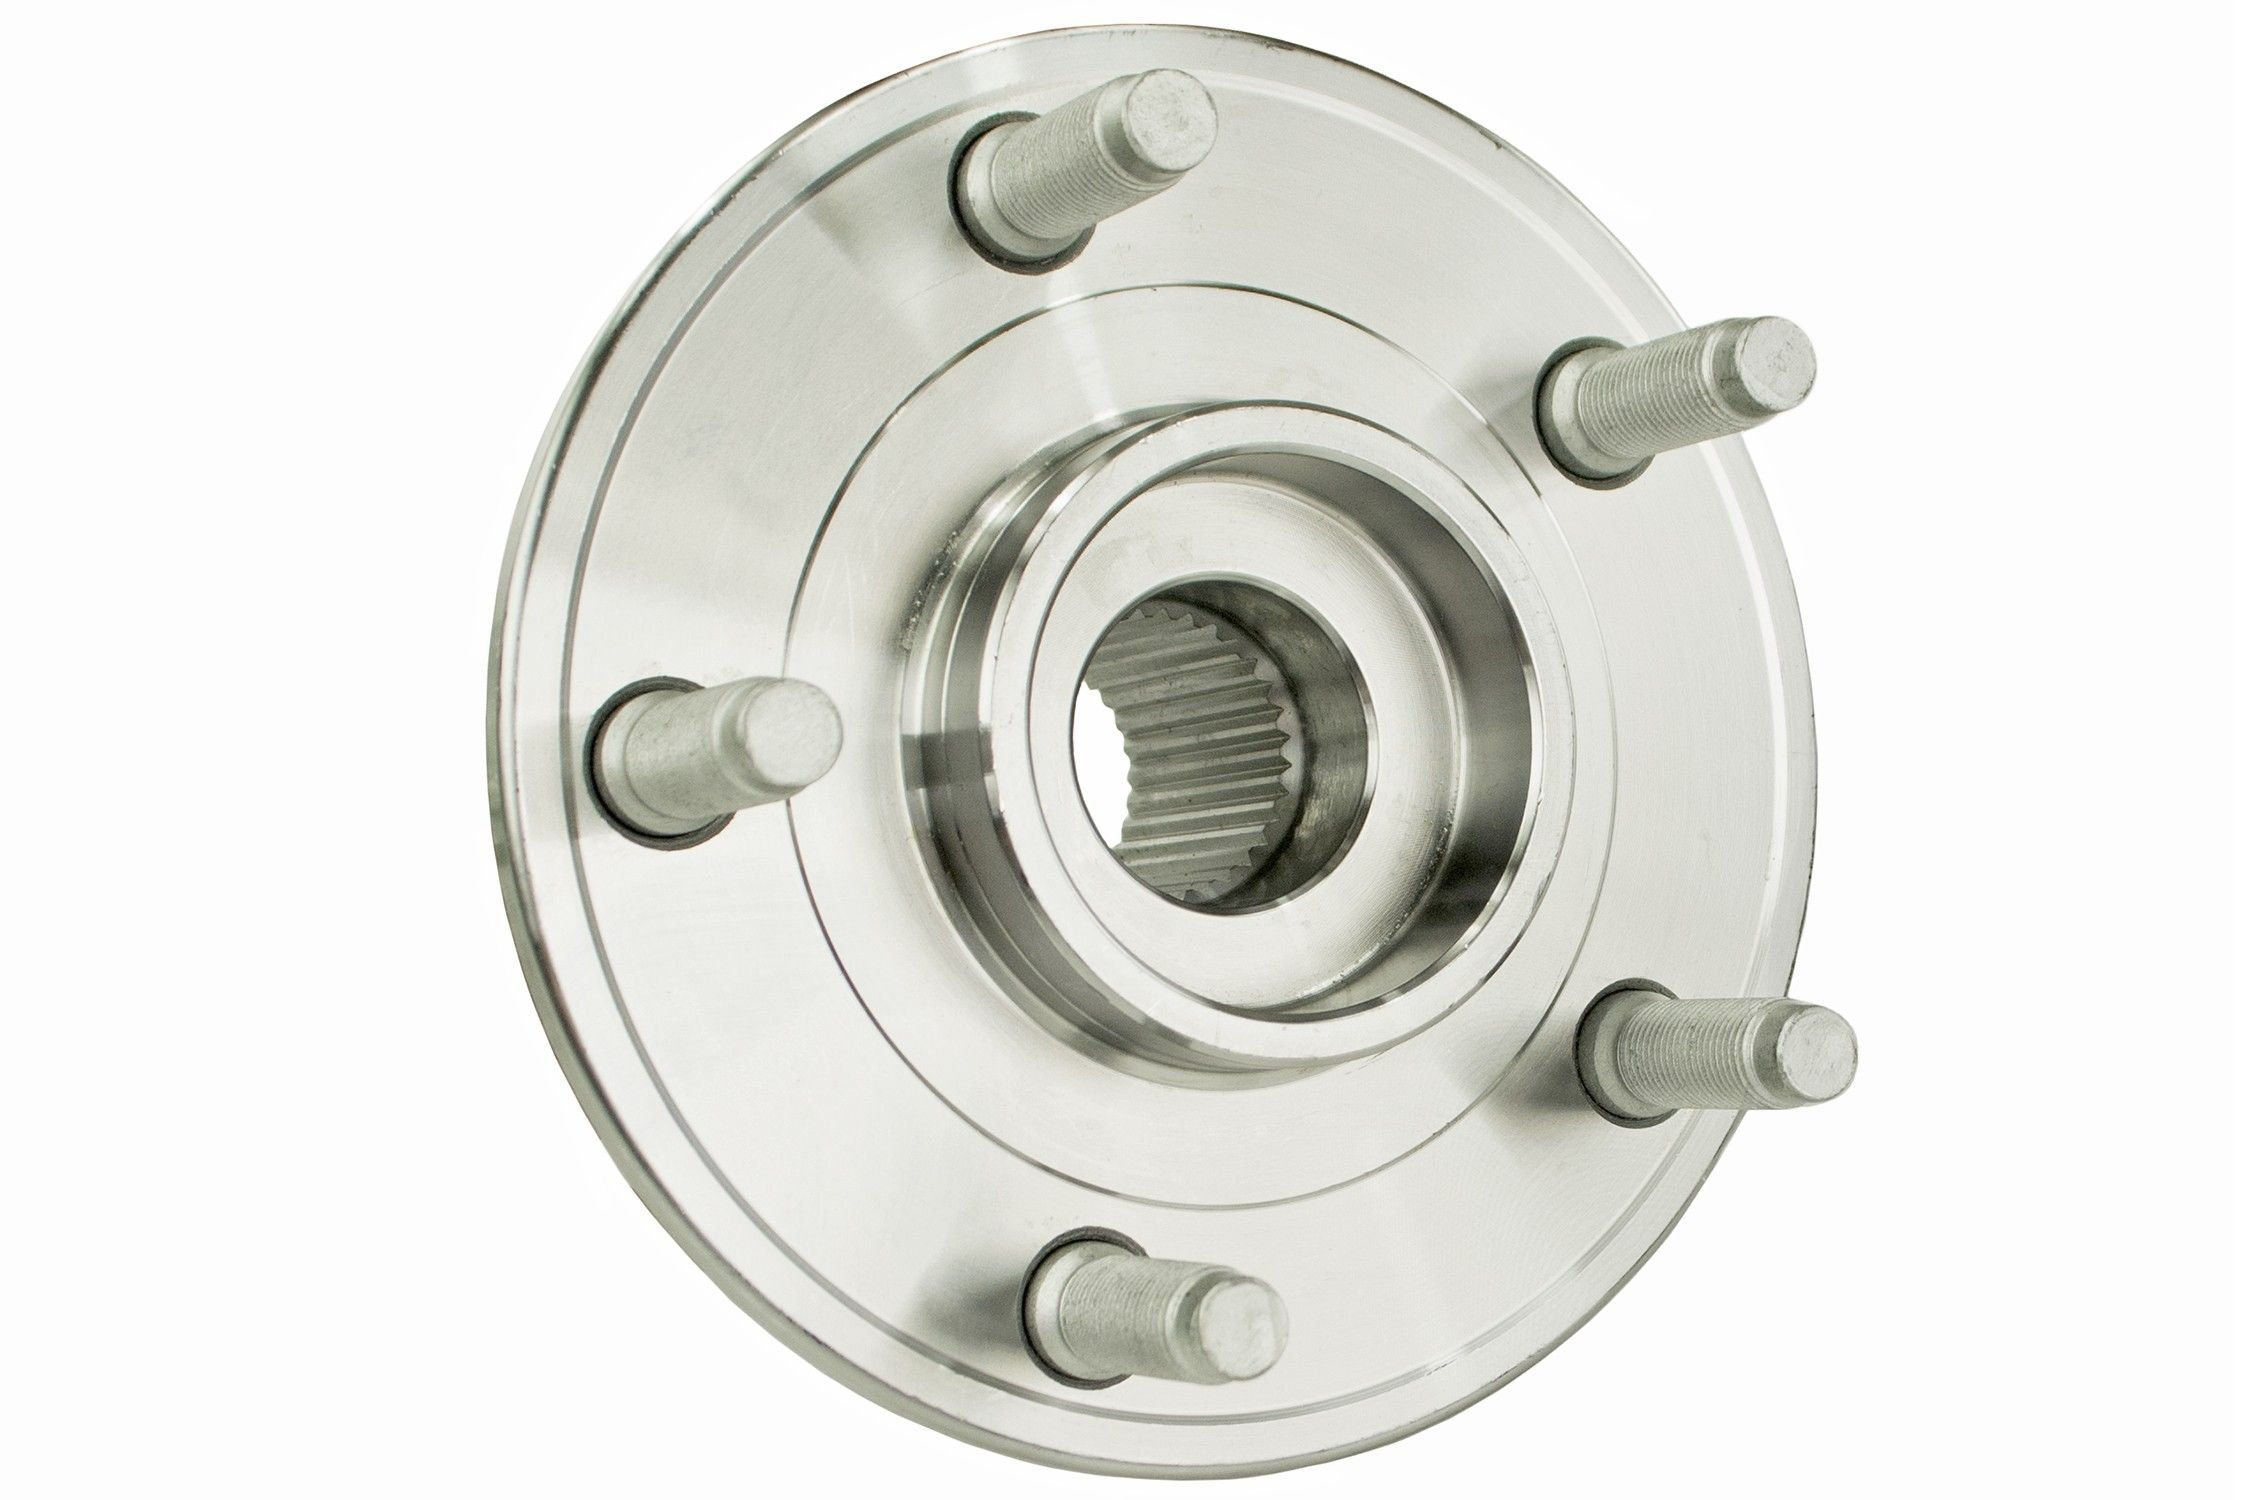 Jeep Wrangler Wheel Bearing and Hub Assembly Replacement